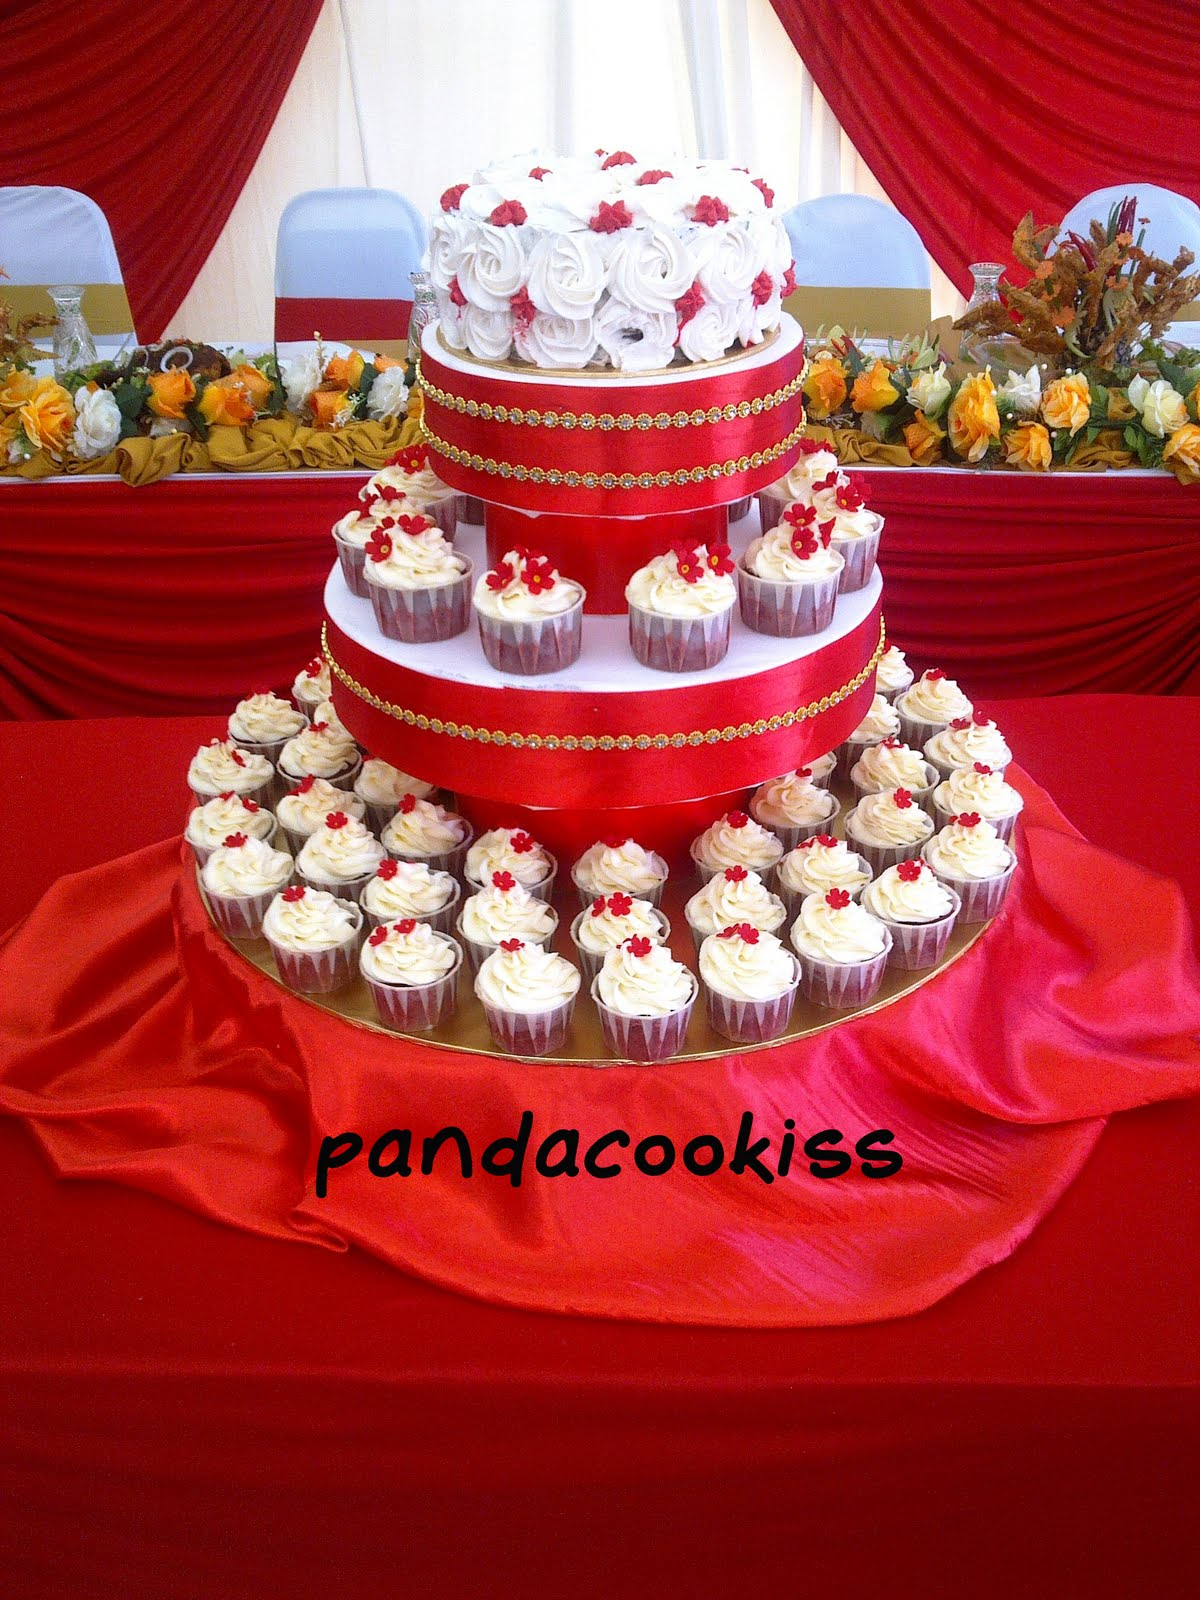 pandacookiss Julia s Red Gold wedding cake tower